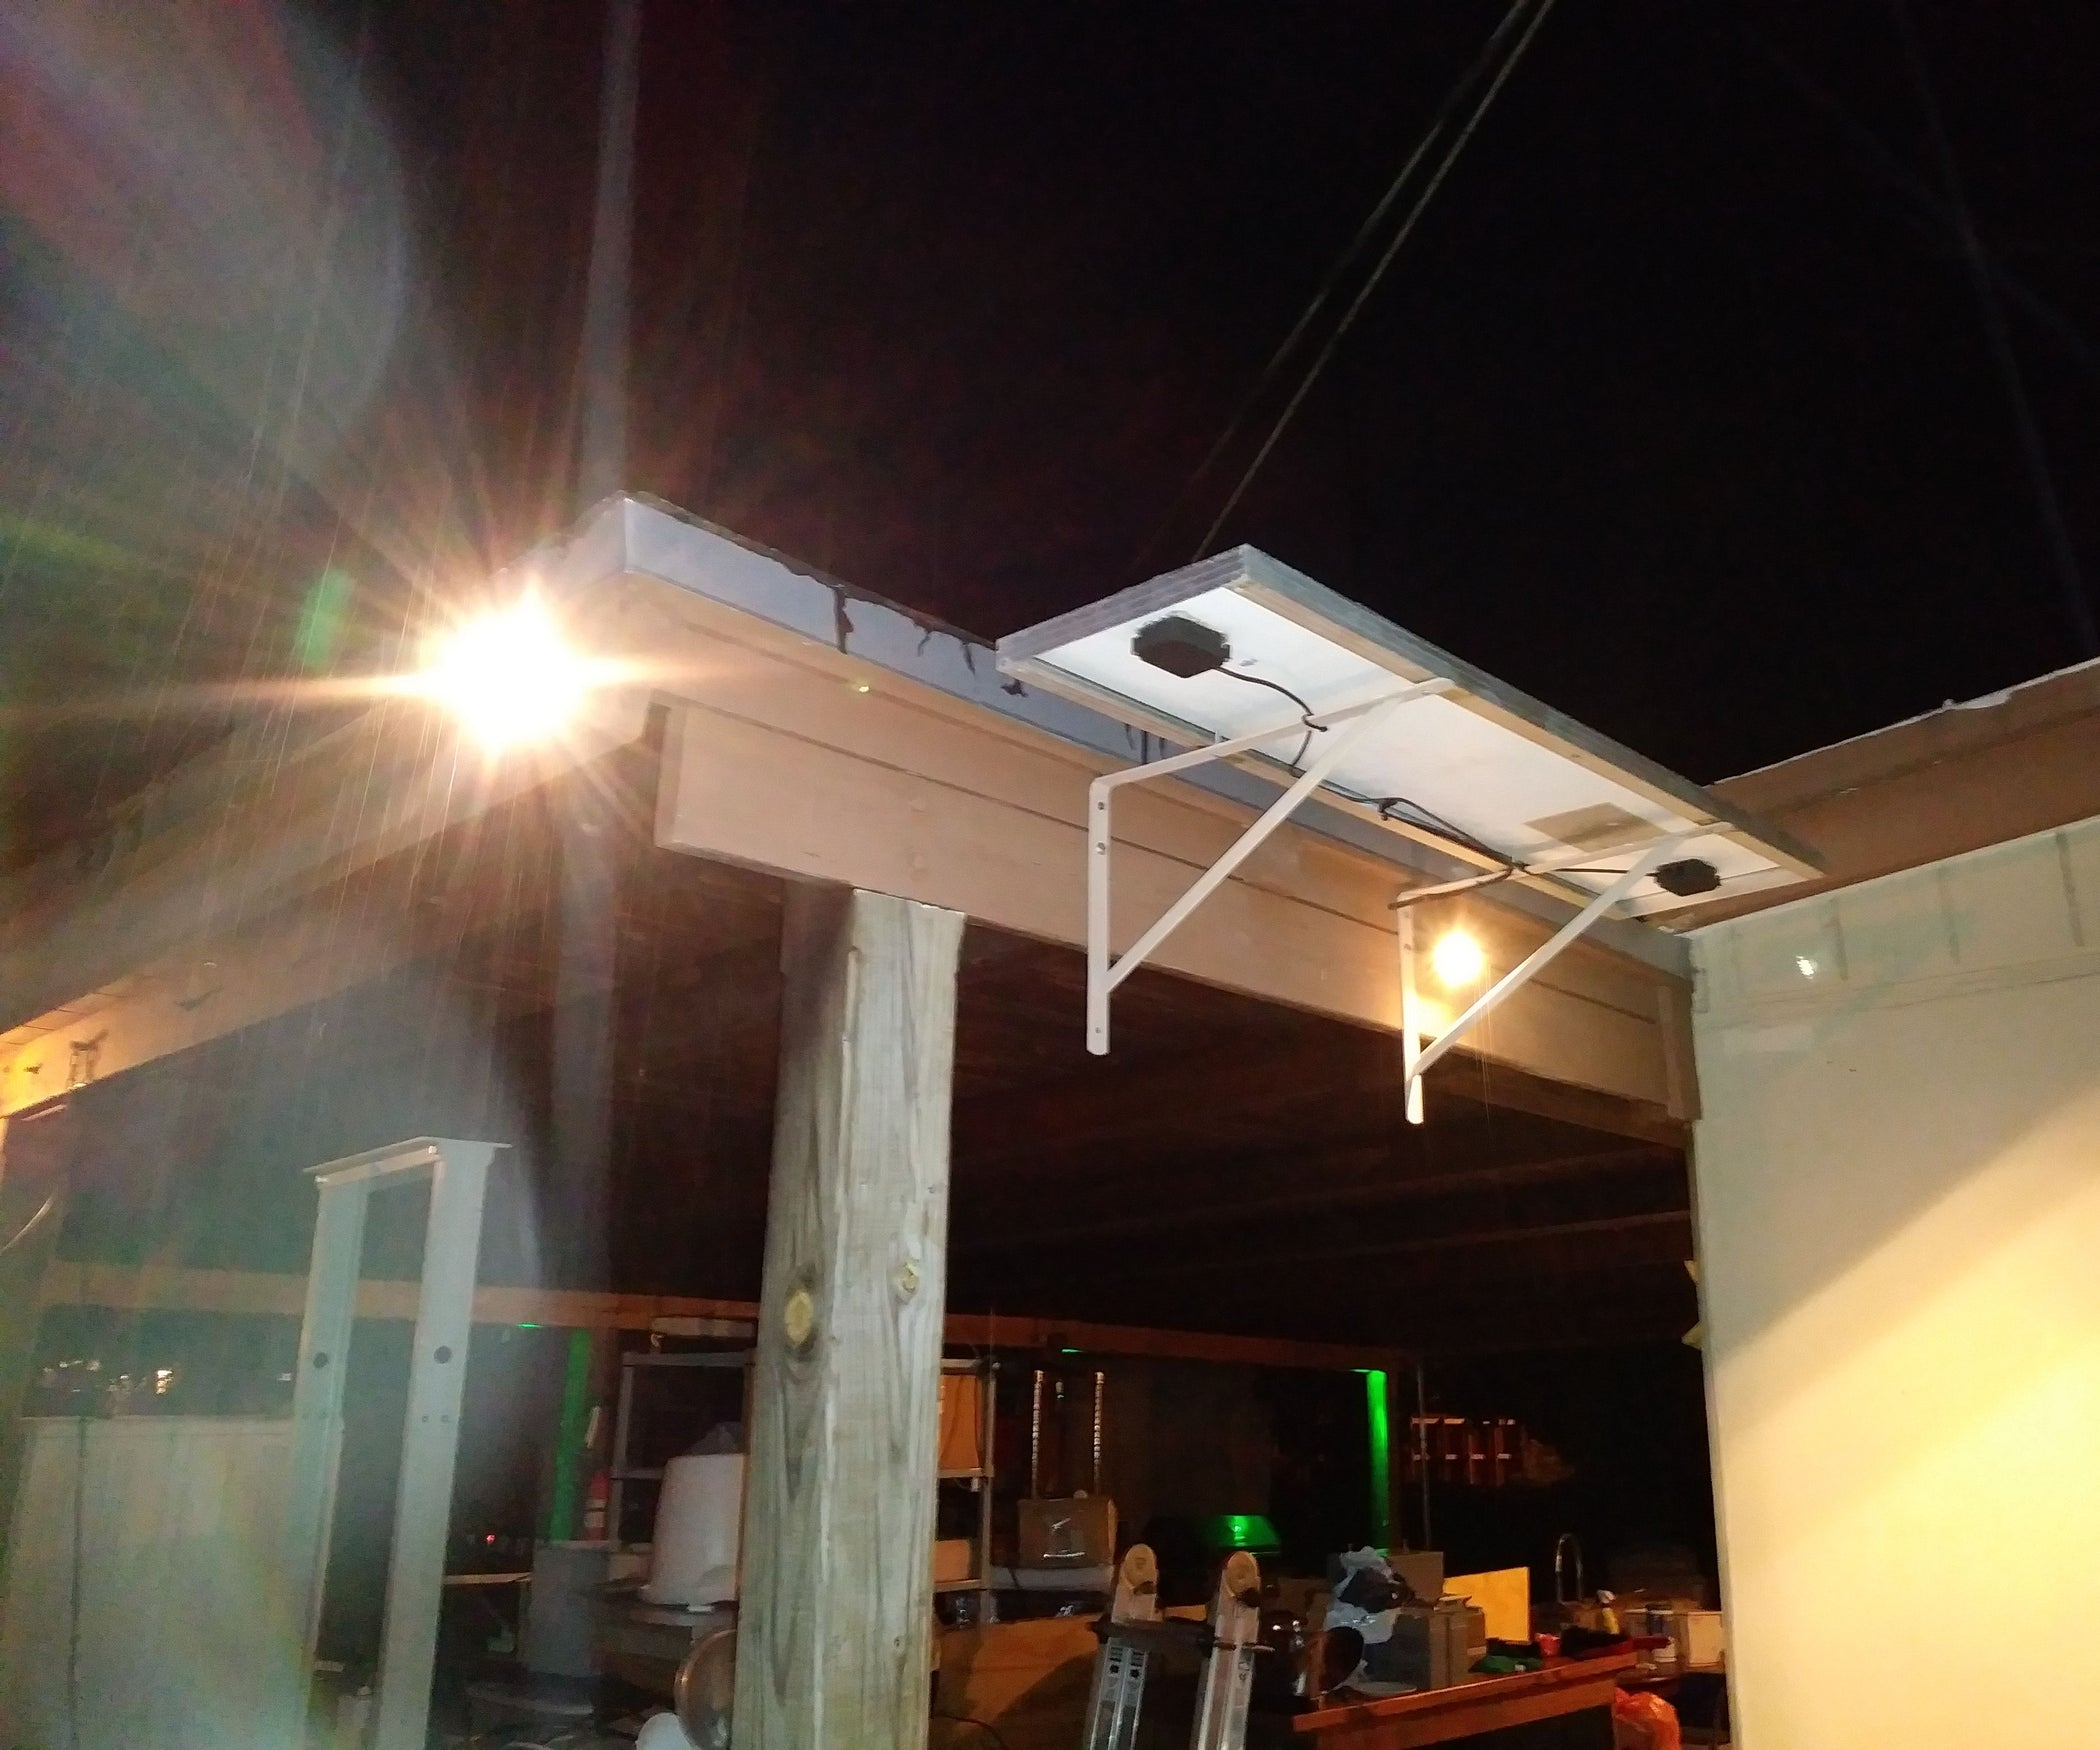 Solar Powered Led Yard Lighting Made Cheap Easy 9 Steps With Wholesale Automatic Light Buy Cute Control Pictures